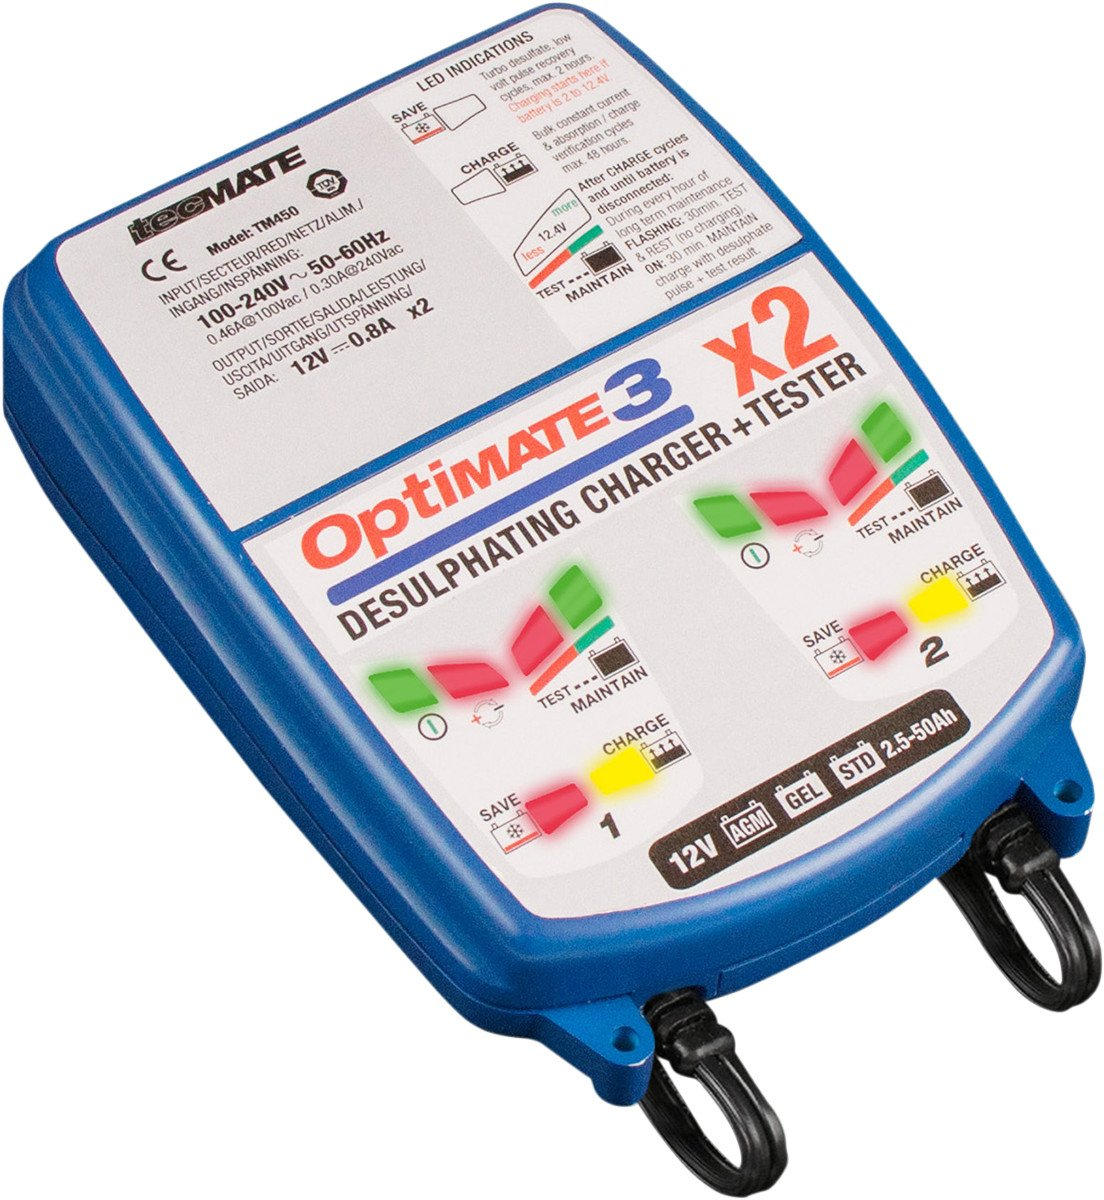 OptiMATE 3 x 2 BANK, TM-451,  2-bank x 7-step 12V 0.8A Battery saving charger-tester-maintainer